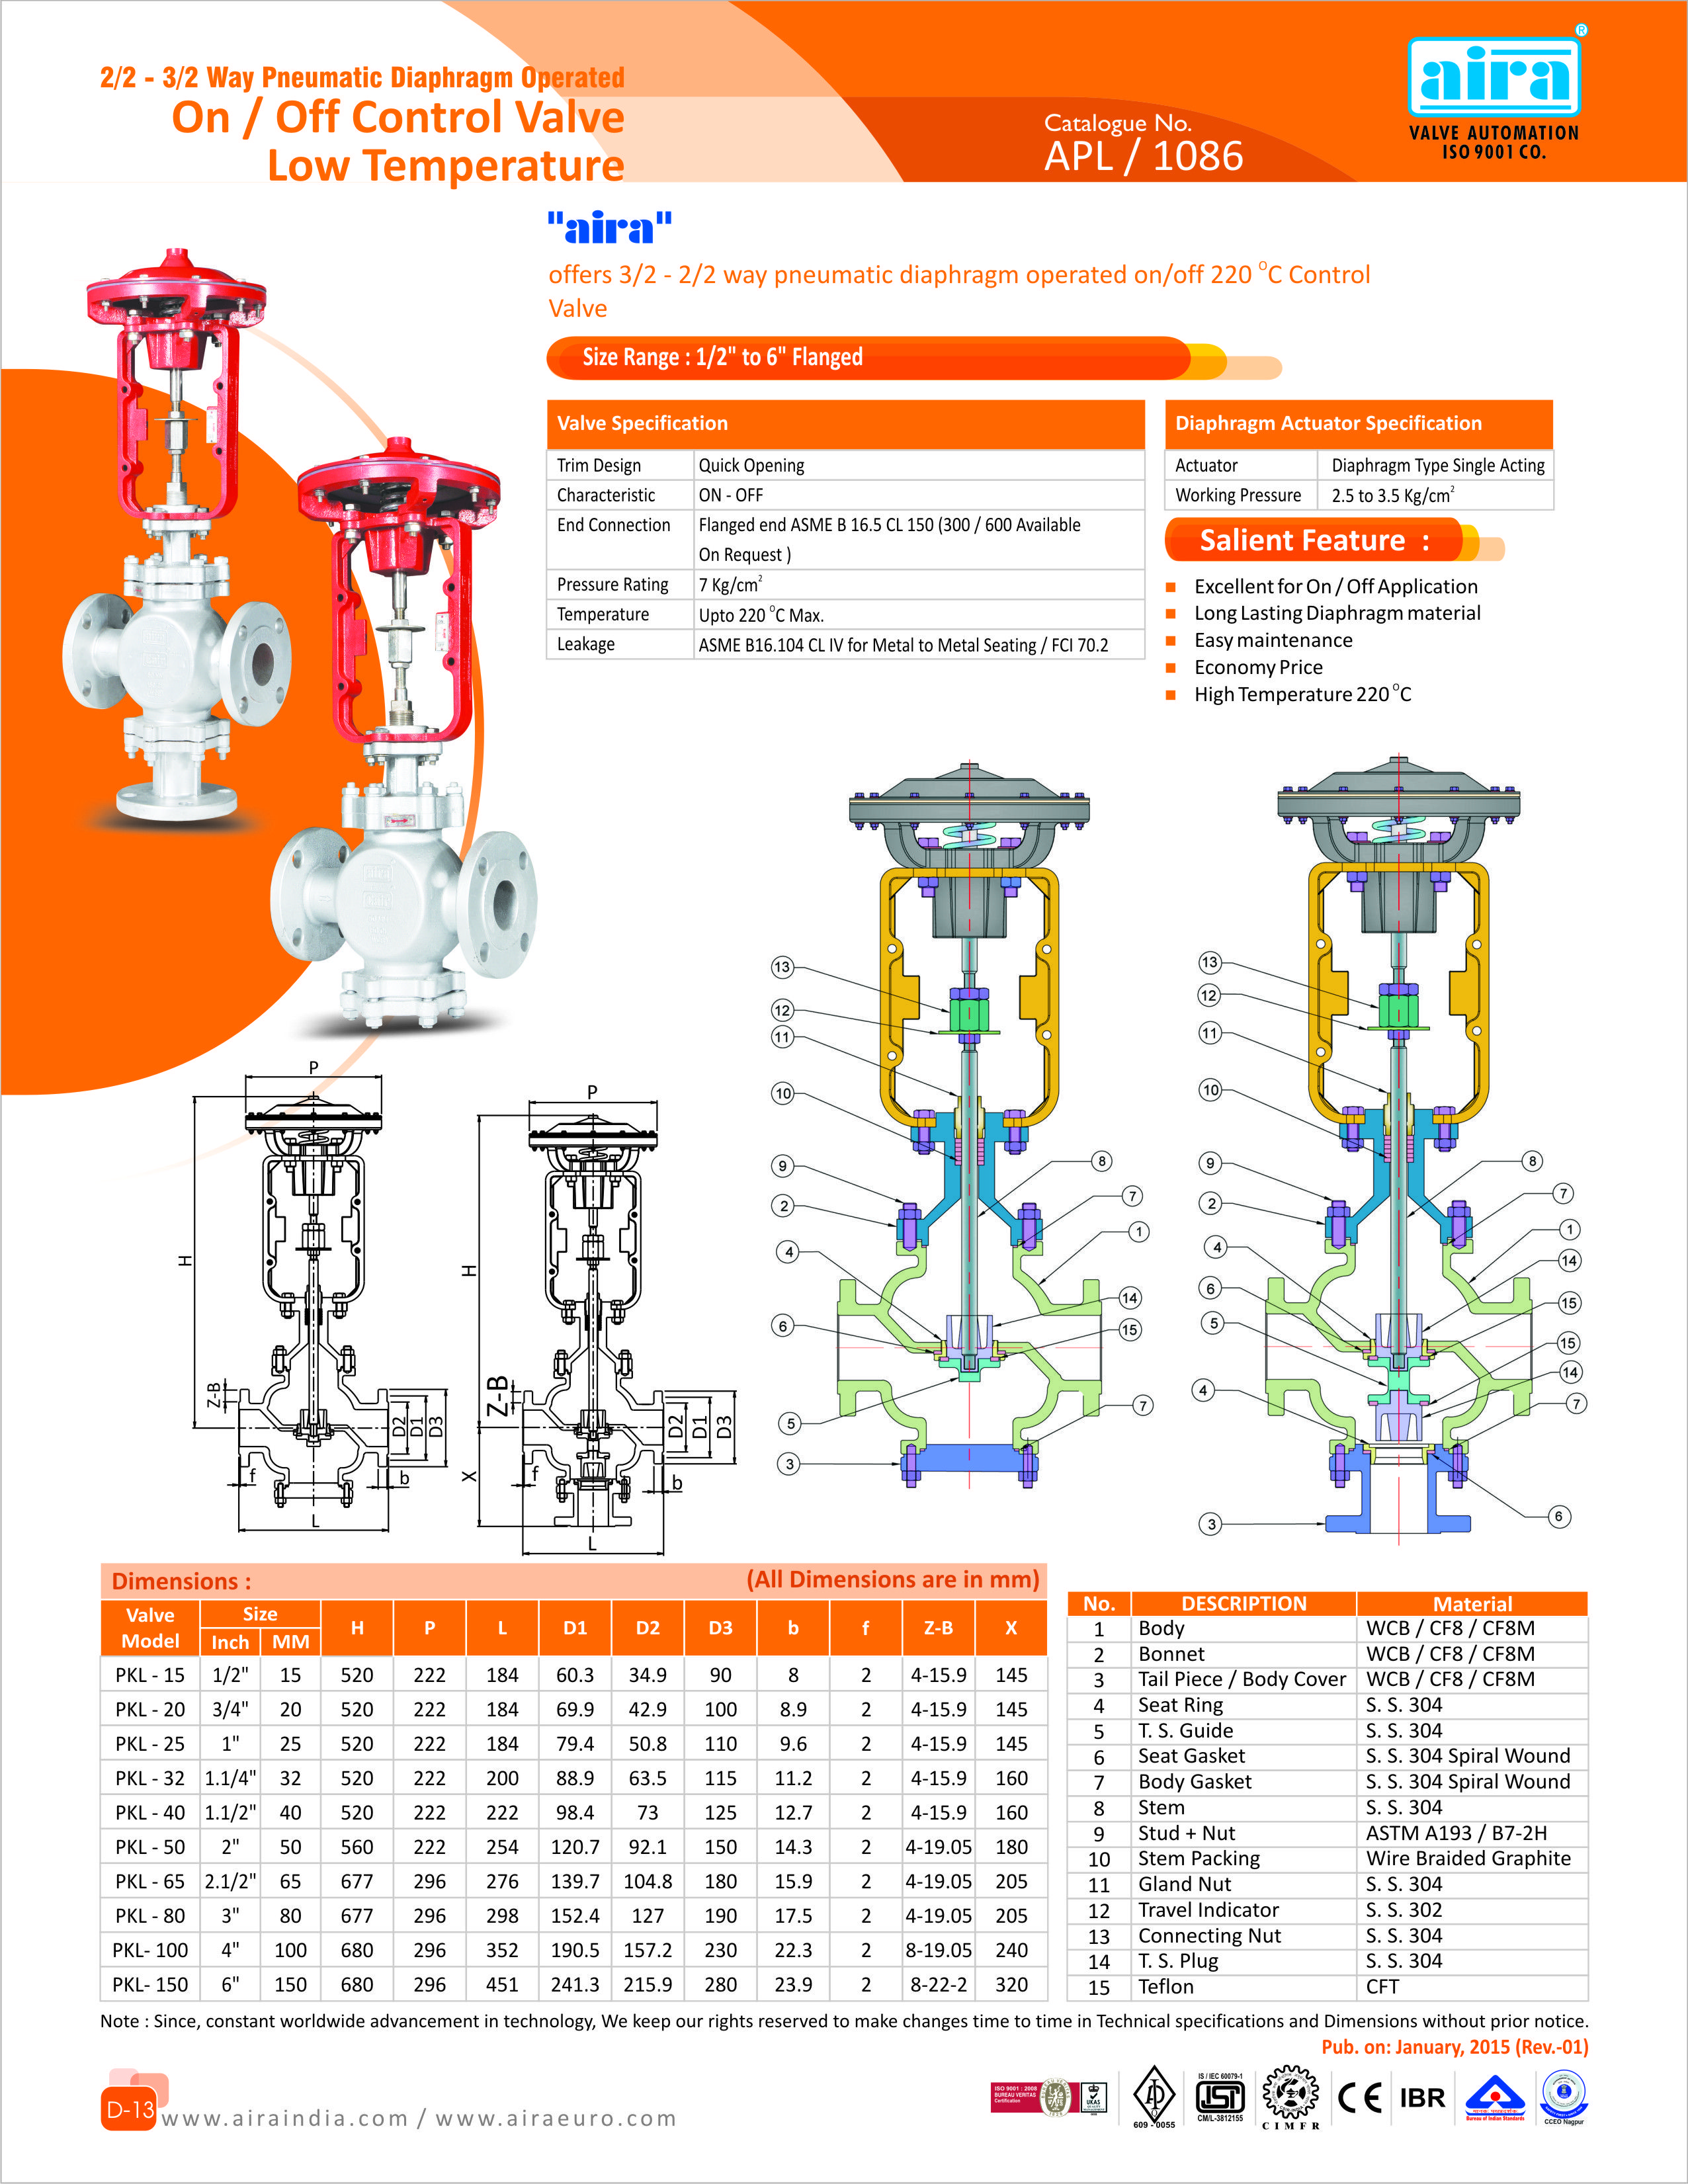 2 2 3 2 way pneumatic diaphragm operated on off control valve low temperature for more info visit now www airaindia com [ 2552 x 3302 Pixel ]